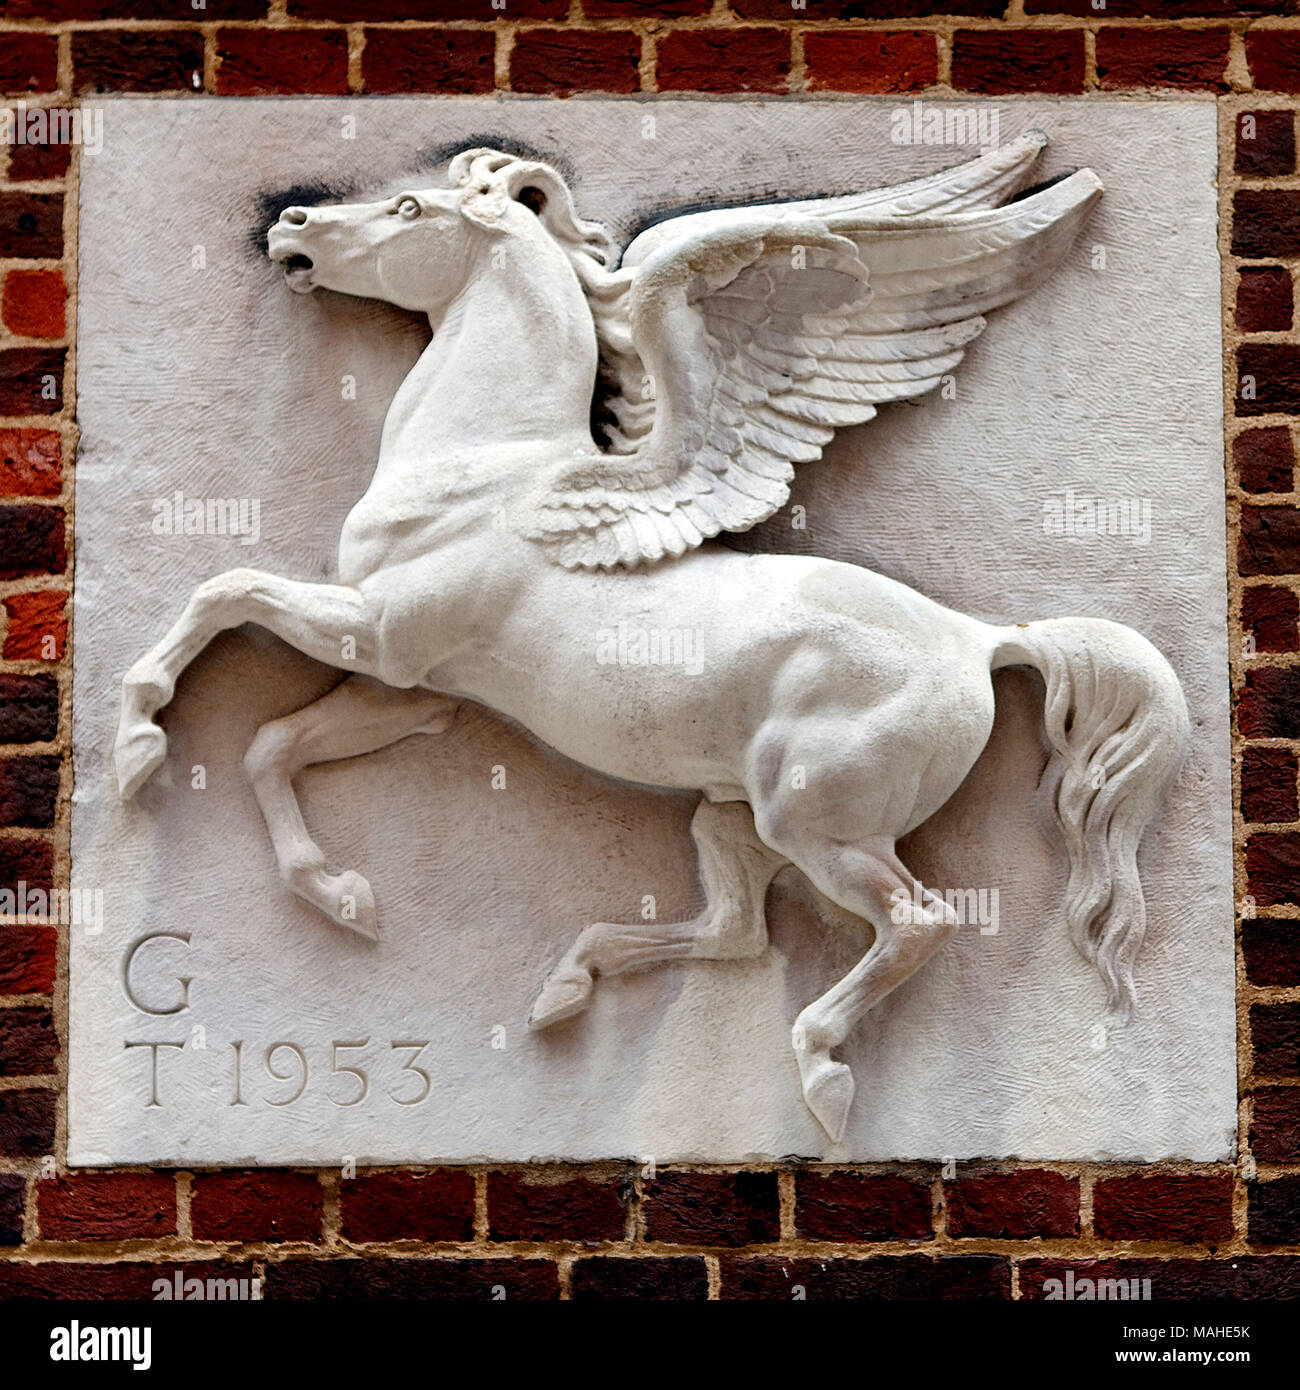 Pegasus by J.Daymond & Sons  The Honourable Society of Inner Temple is one of the four Inns of Court around the Royal Courts of Justice in London whic - Stock Image